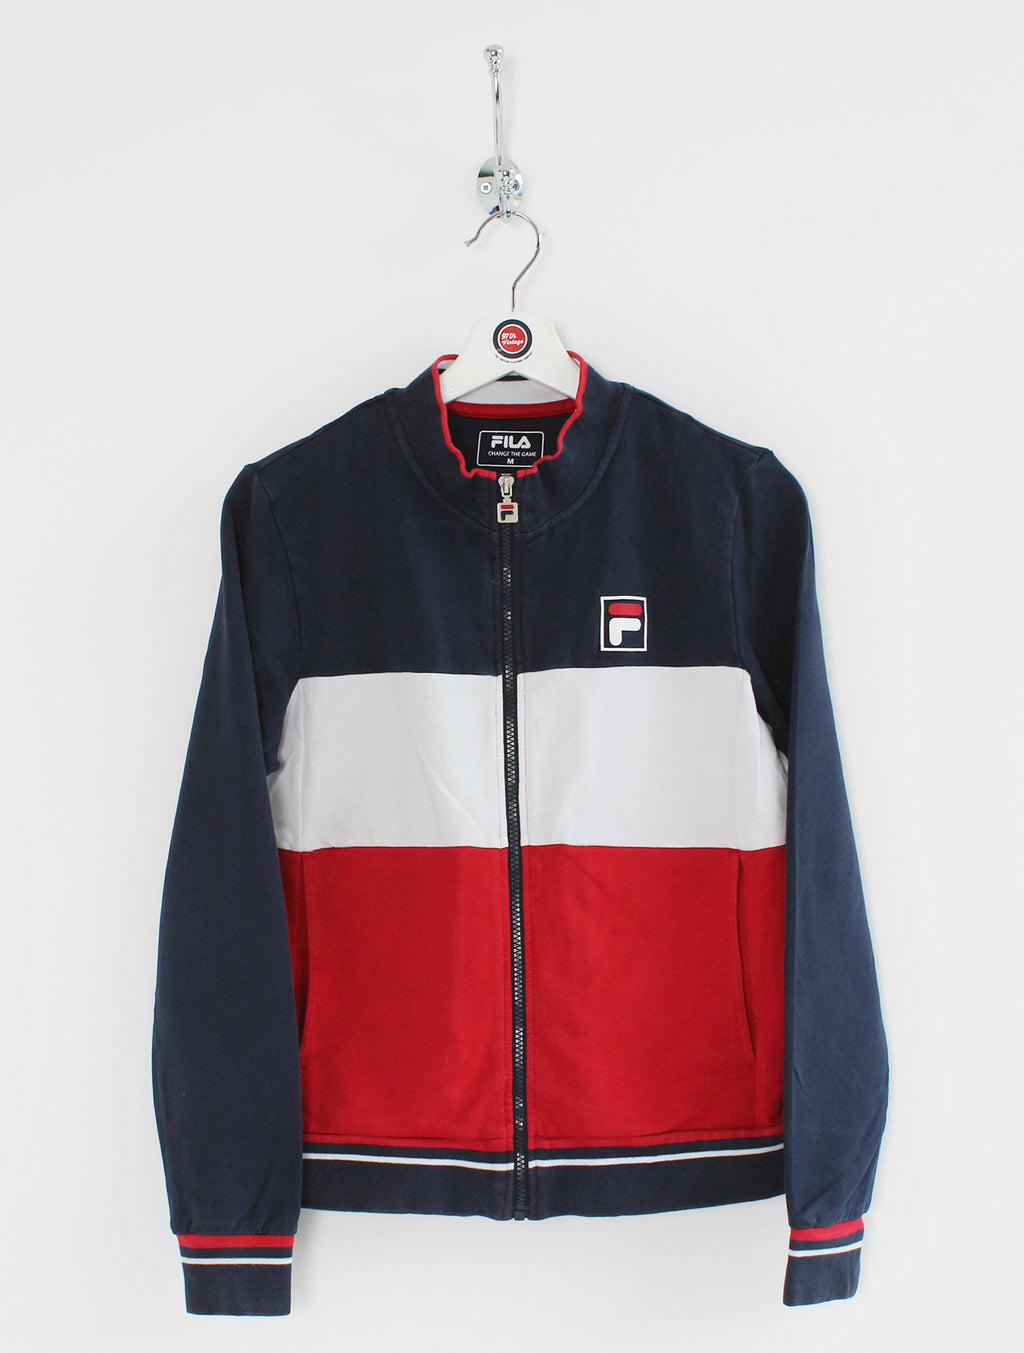 Women's Fila Jacket (M)